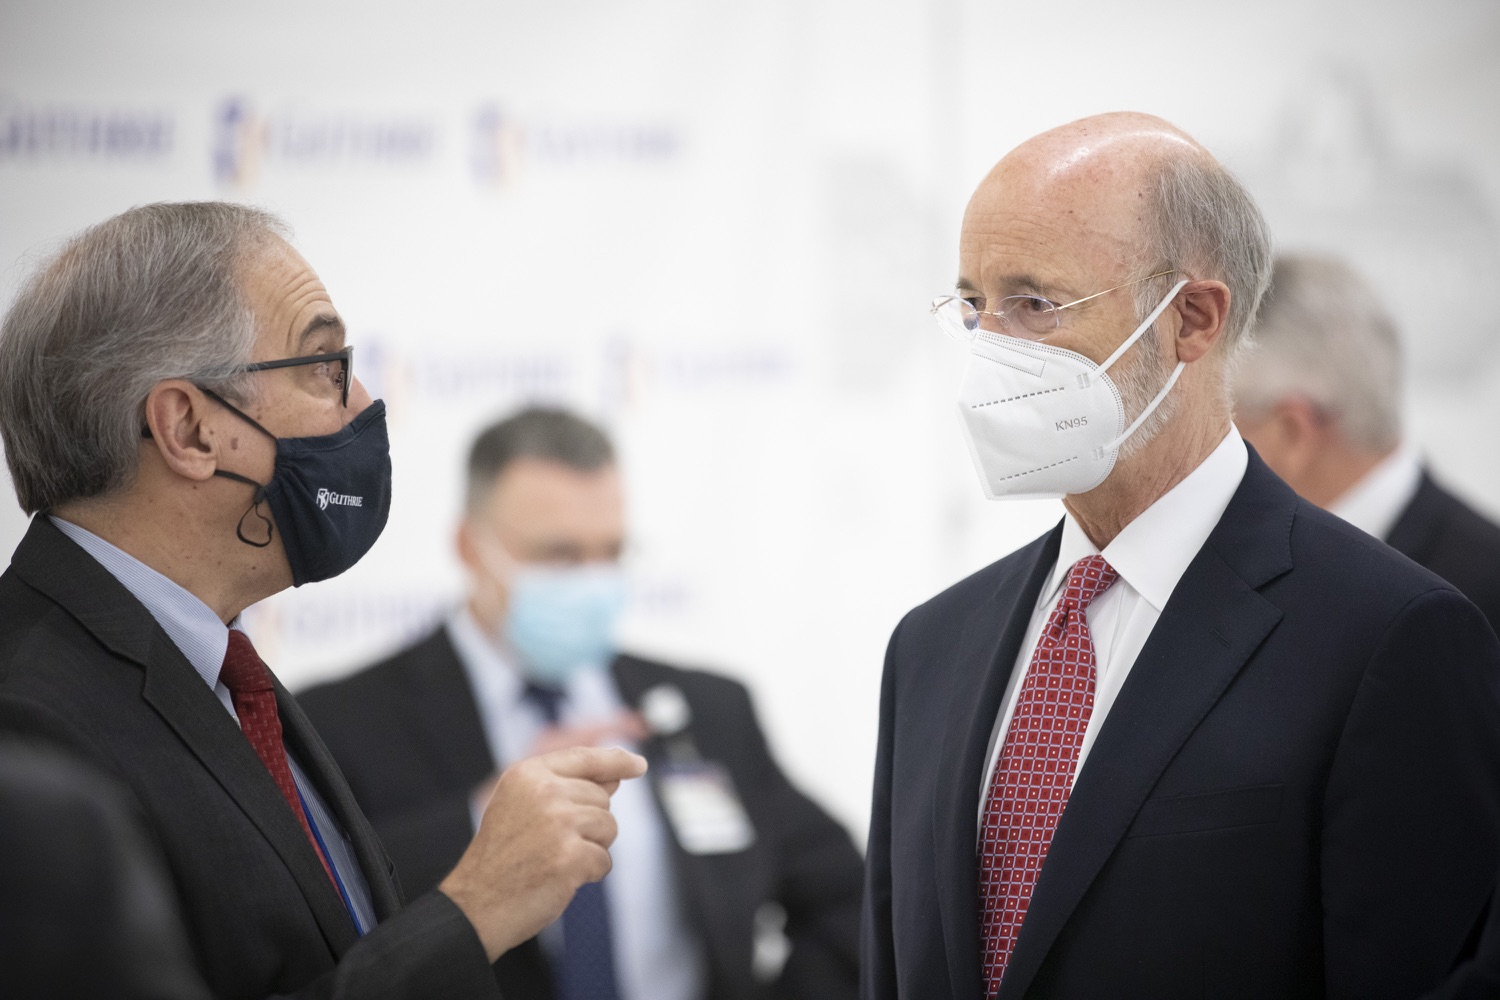 """<a href=""""https://filesource.wostreaming.net/commonwealthofpa/photo/18682_gov_vaccineClinic_dz_034.jpg"""" target=""""_blank"""">⇣Download Photo<br></a>Pennsylvania Governor Tom Wolf answers speaking with Joseph Scopelliti, MD President and CEO The Guthrie Clinic.  Governor Tom Wolf today visited the Guthrie Health vaccine clinic in Sayre, Bradford County today to tour this clinic providing vaccines to a large swath of rural residents and to talk about progress in vaccinating Pennsylvanians now that eligibility is open to all individuals age 16 and older.  Sayre, PA   April 21, 2021"""